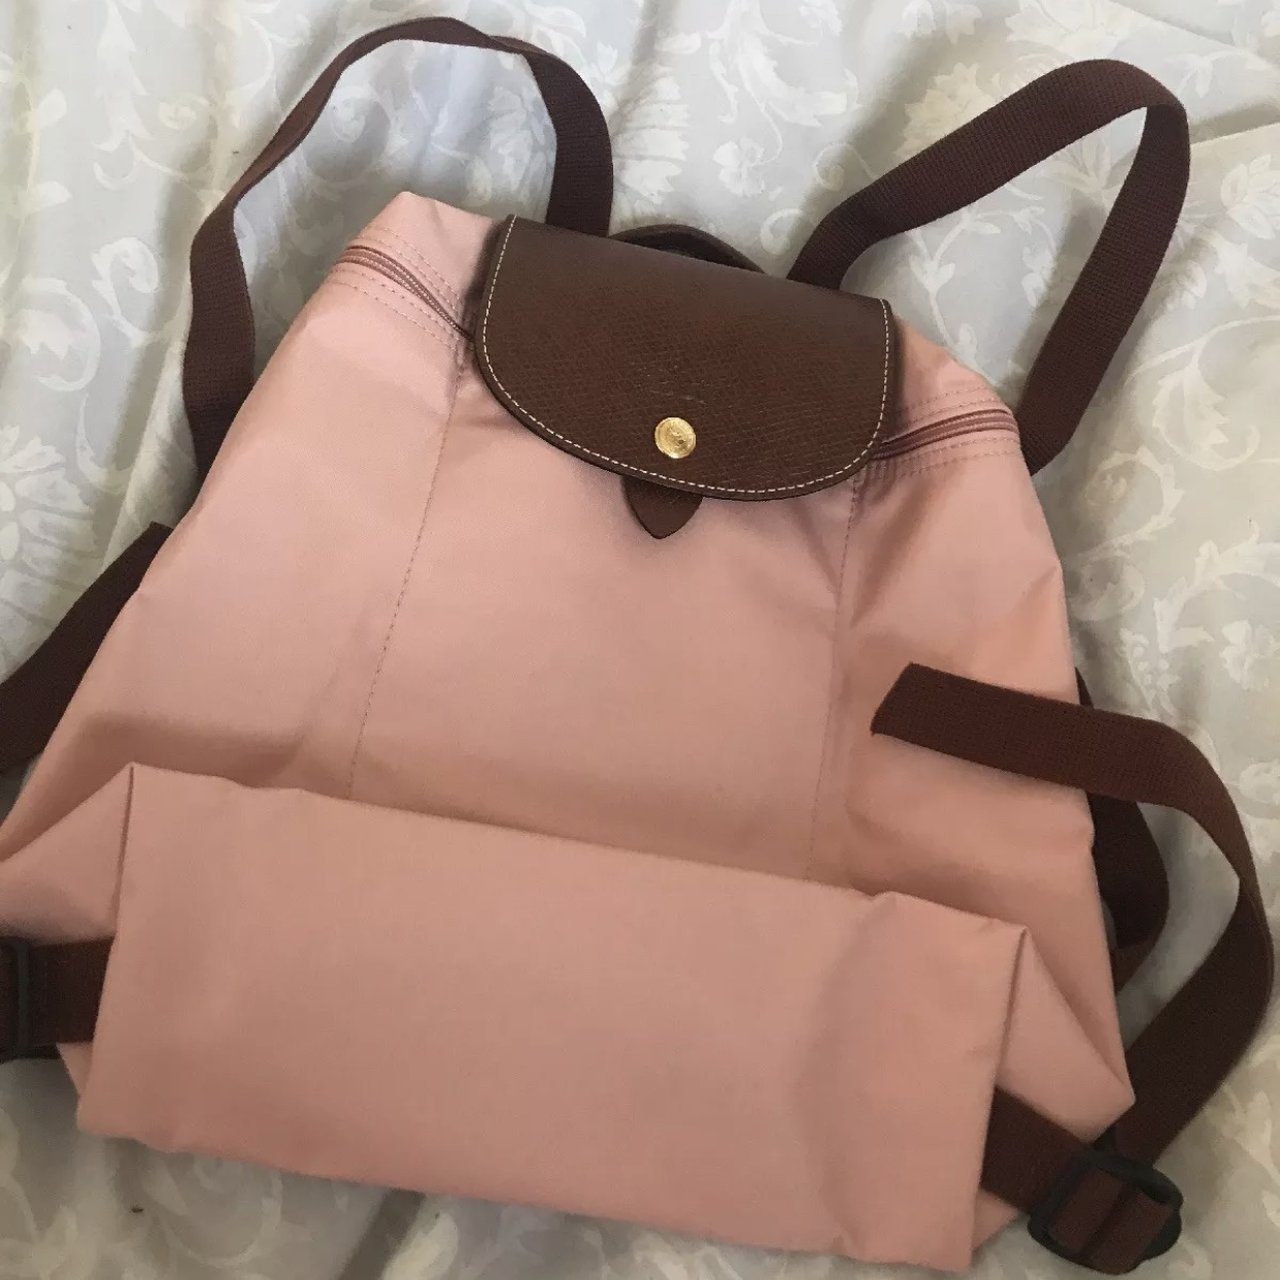 Brand new Longchamp Le Pliage backpack in shade pink. Never - Depop 619ff8c0991f4